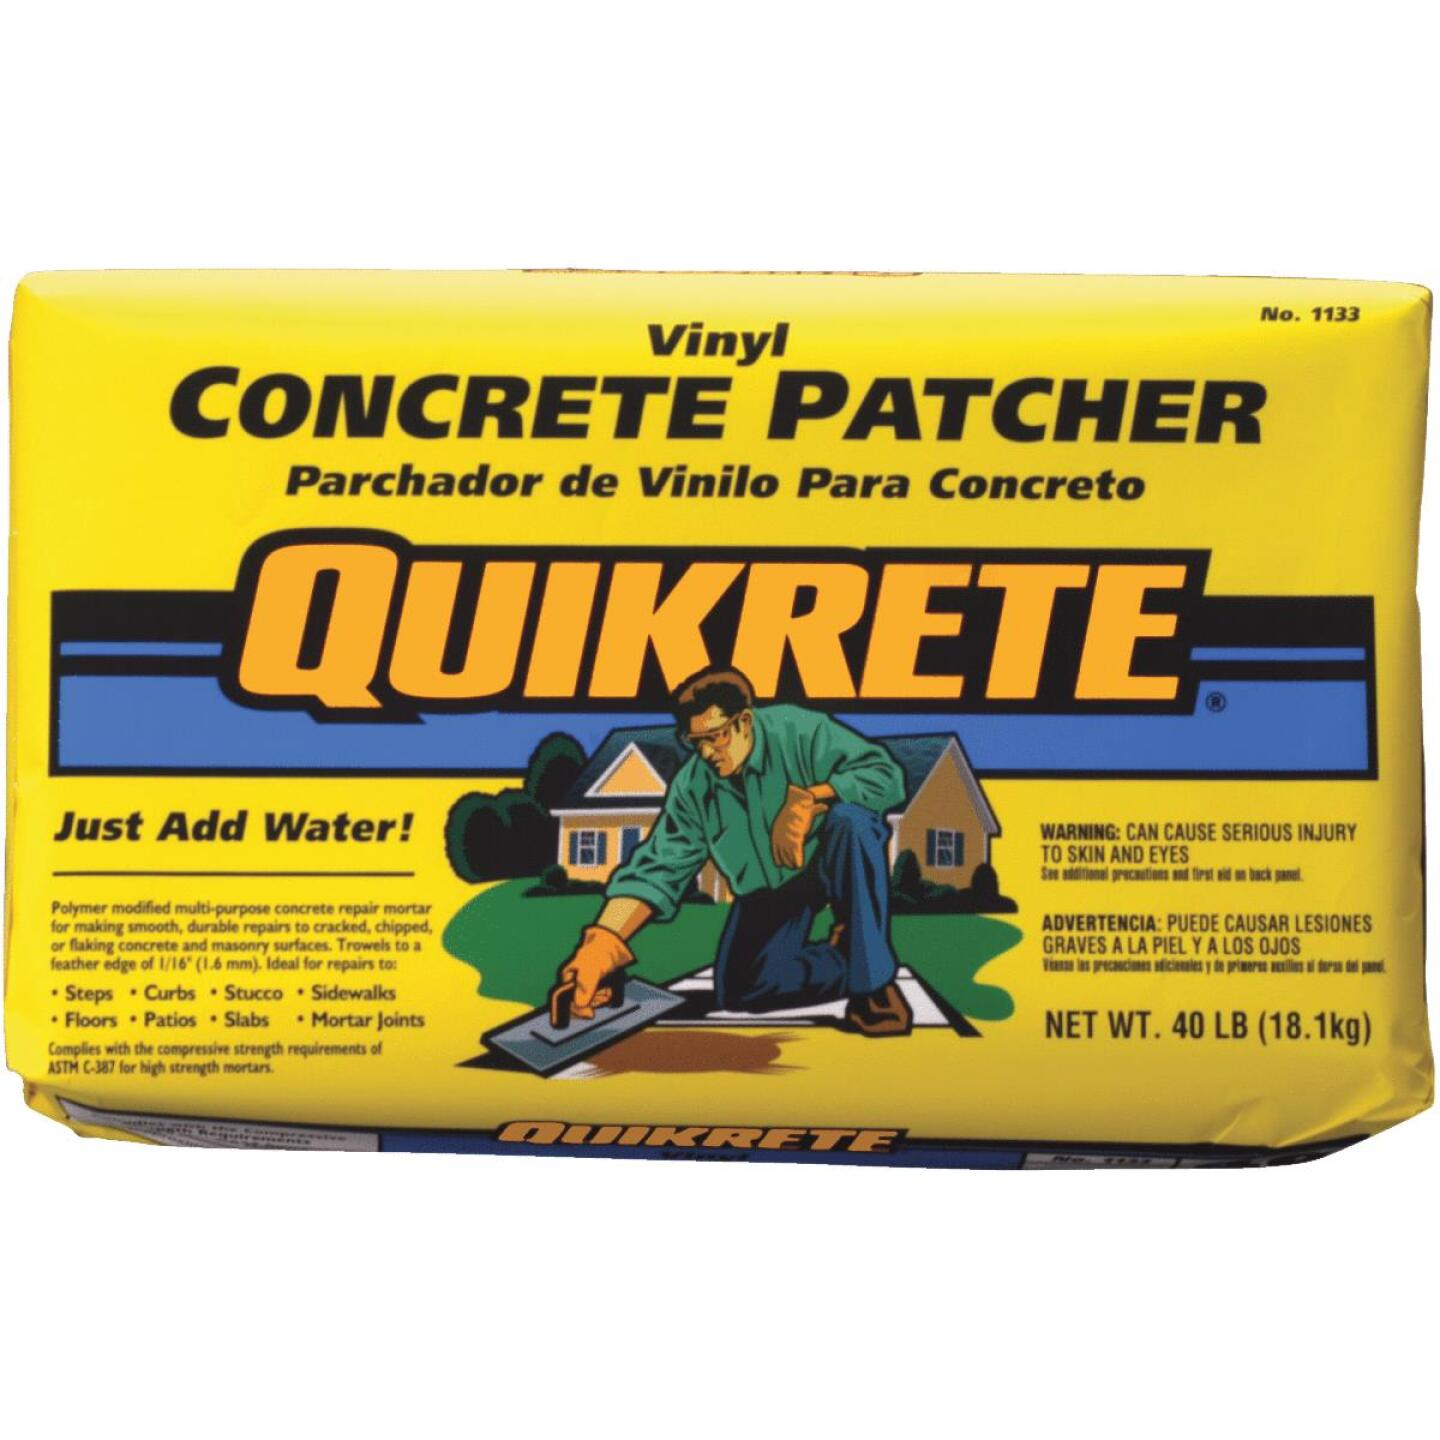 Quikrete 40 Lb Ready-to-Use, Gray Concrete Patch Image 1